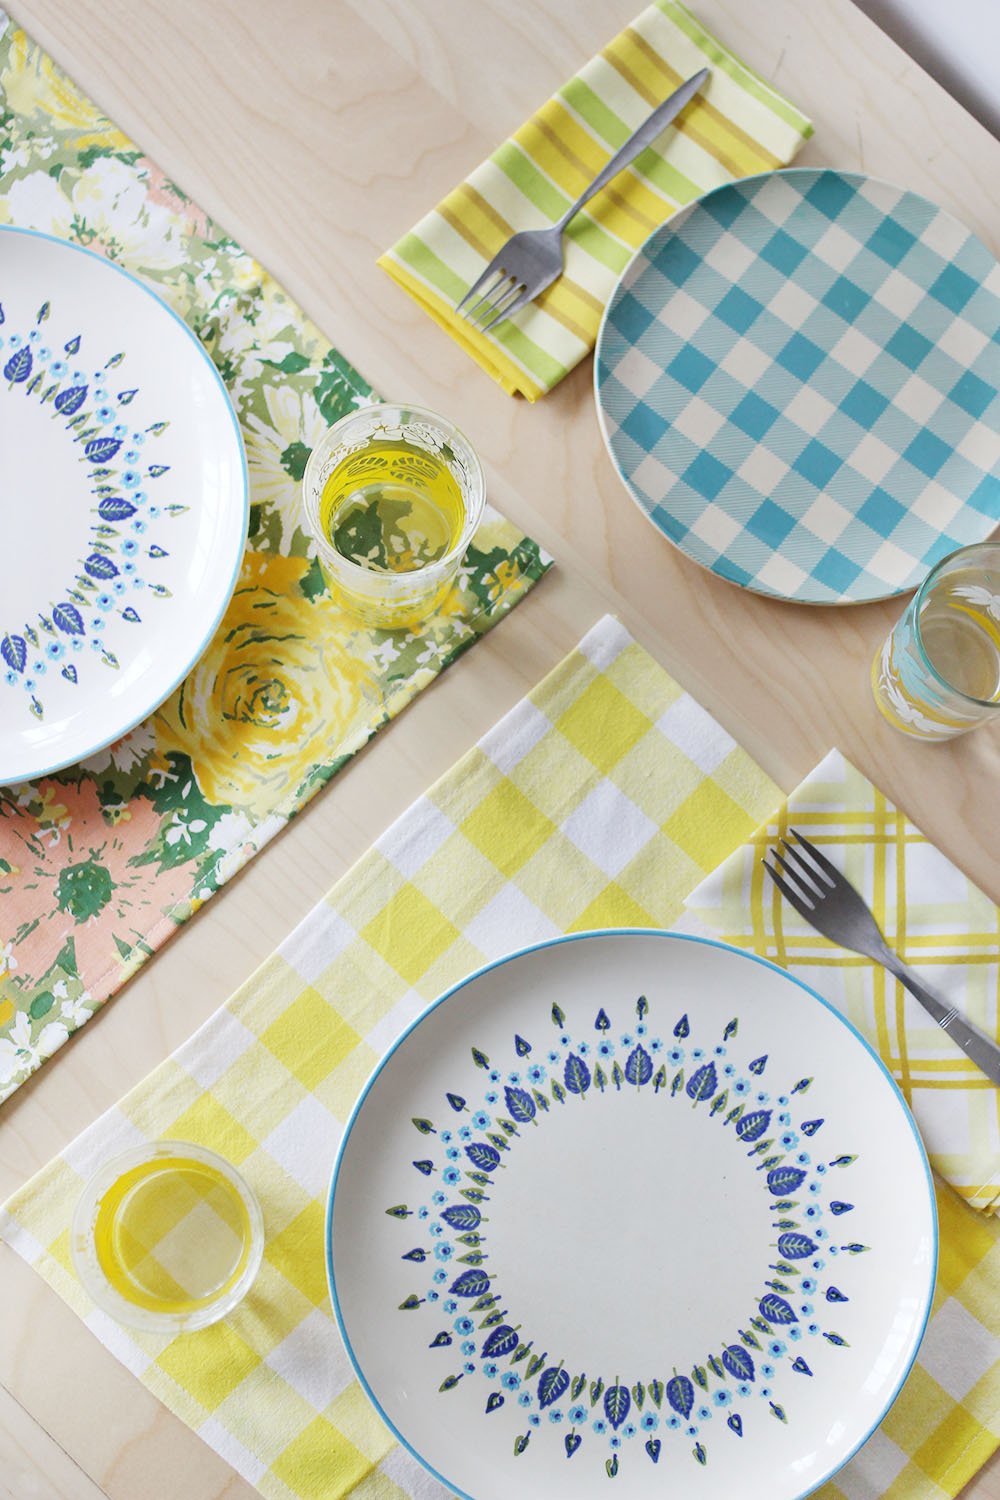 How to make dining table mats at home - Cloth Napkin And Placemat Diy